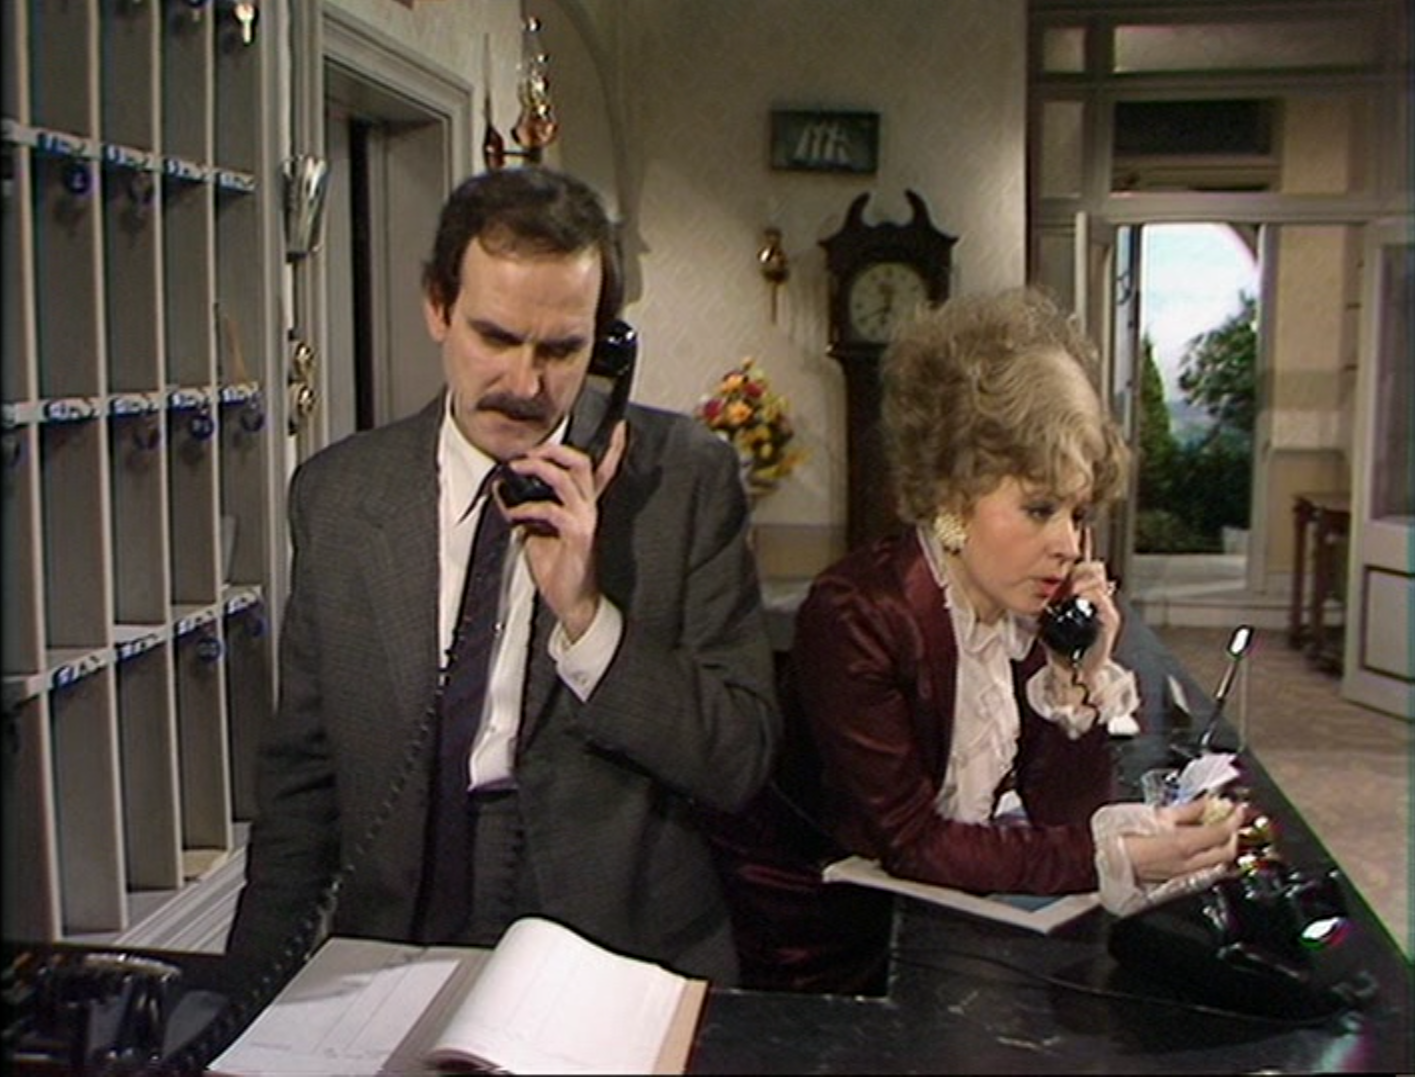 hotel customer service - Basil & Sybil Fawlty in a scene from Fawlty Towers